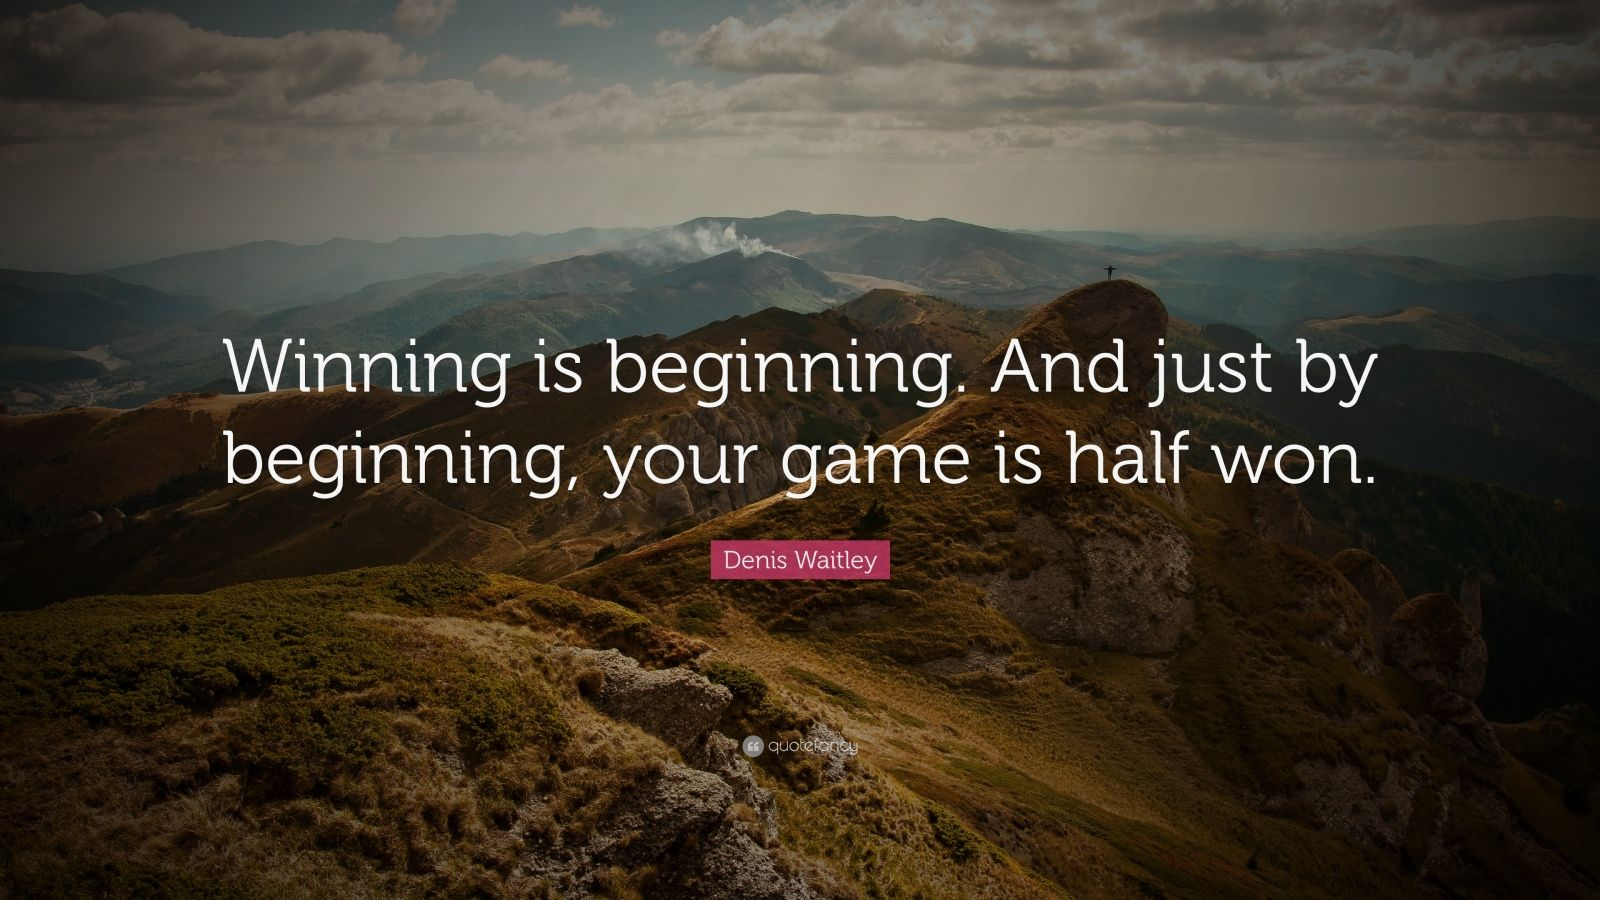 """Denis Waitley Quote: """"Winning is beginning. And just by beginning, your game is half won."""""""